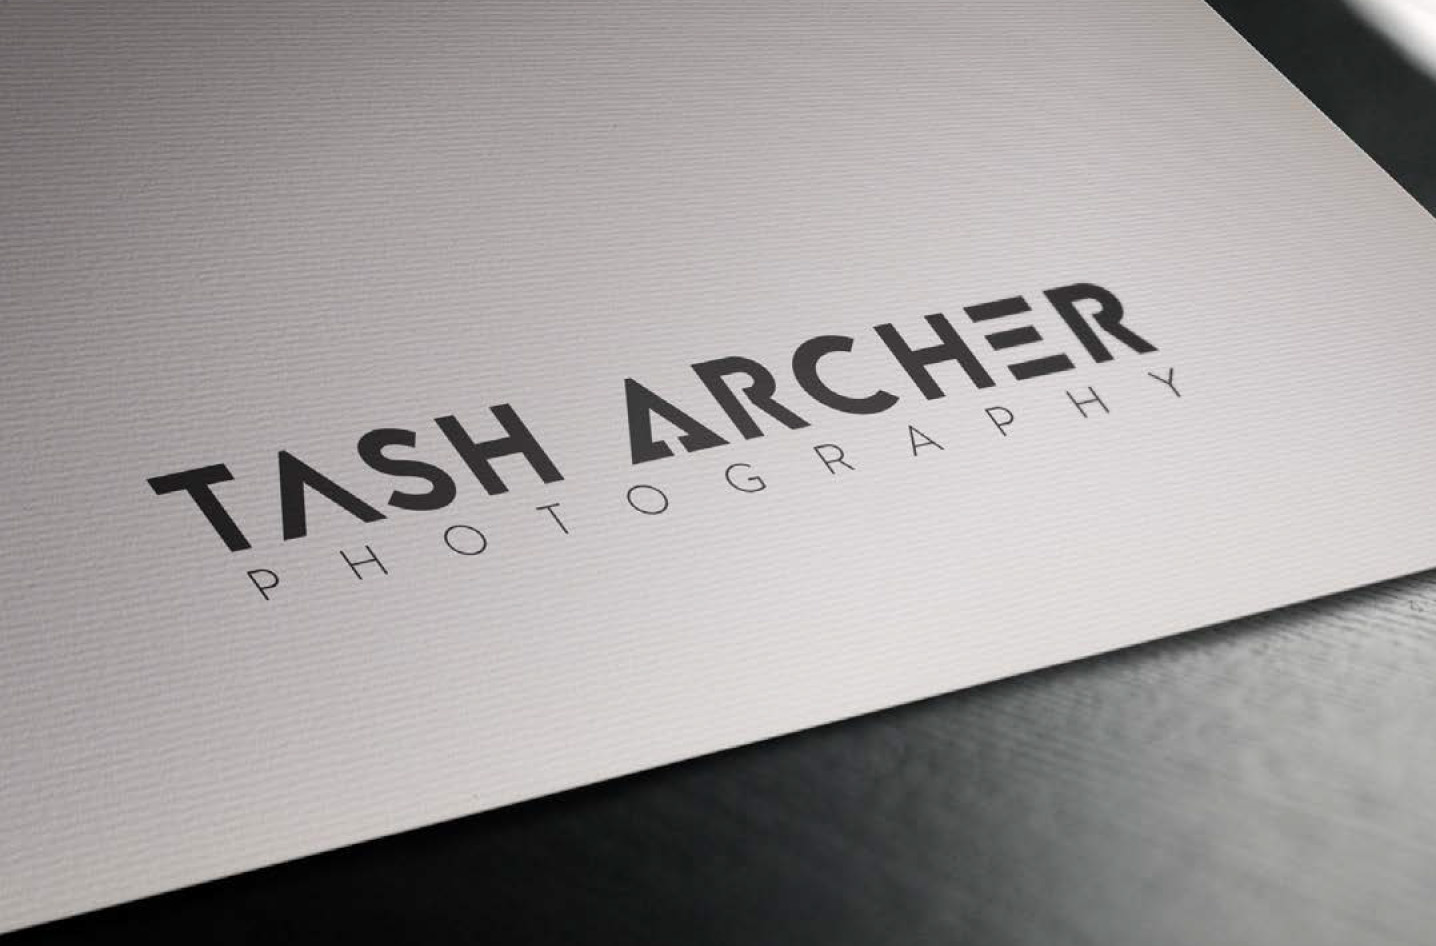 Tash Archer Photography